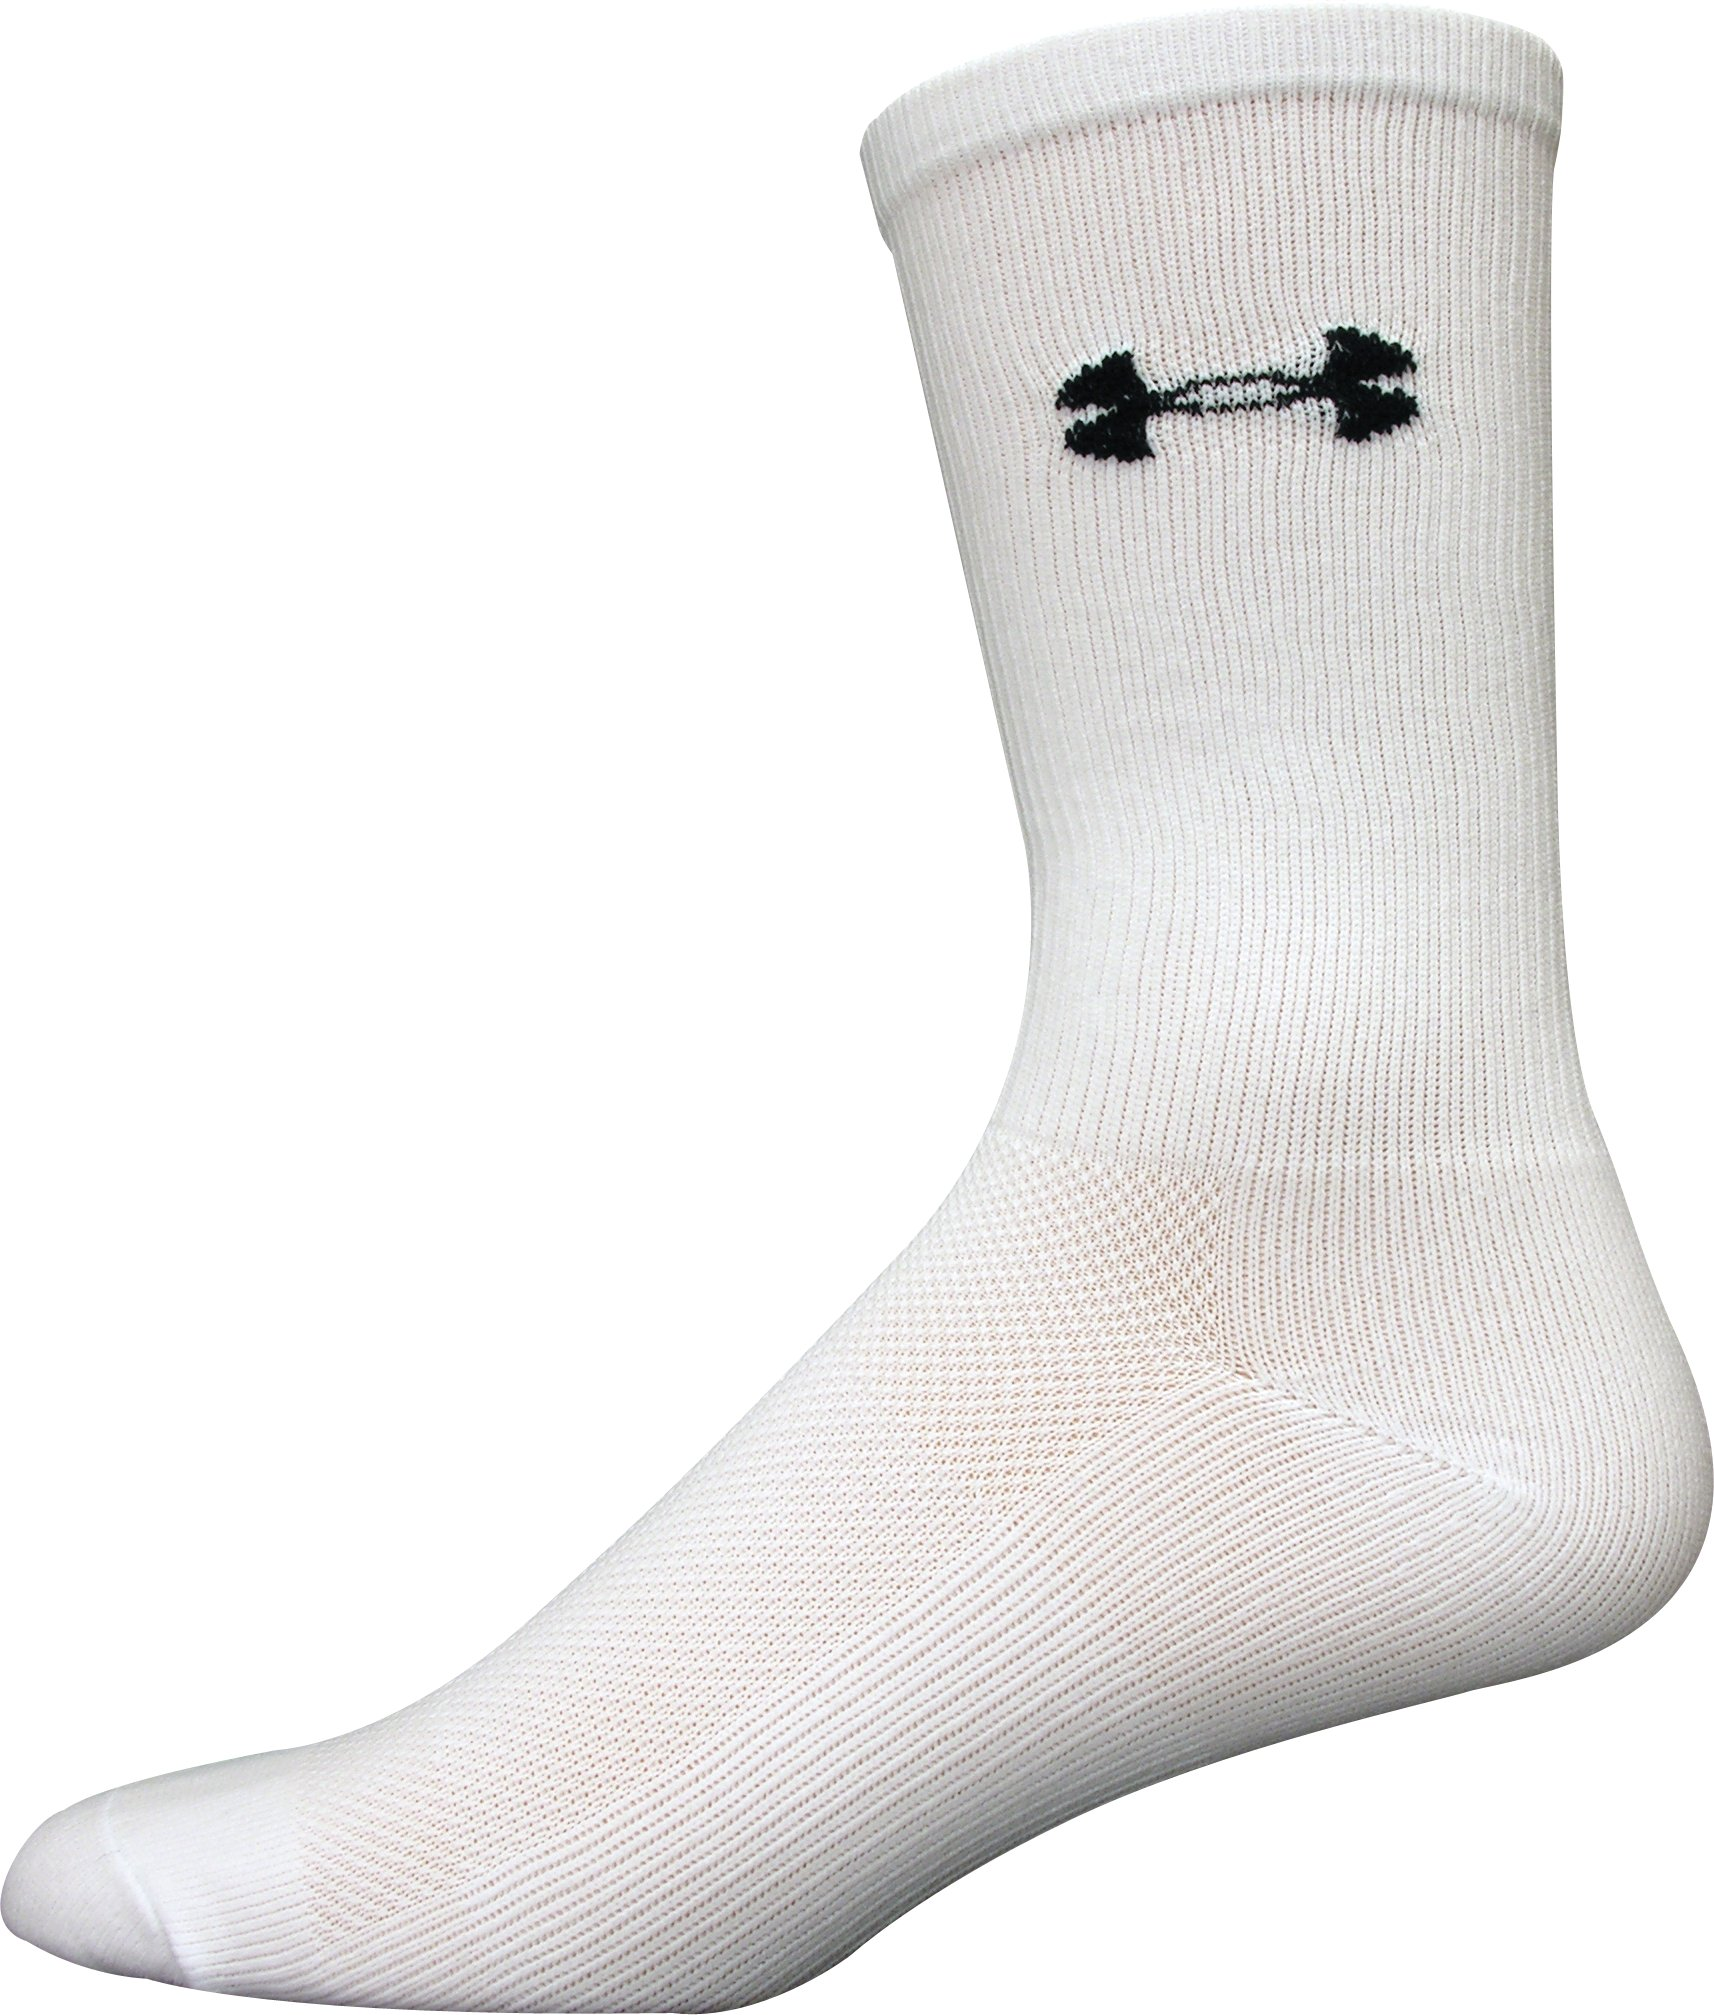 Men's Hockey Crew 2-Pack, White